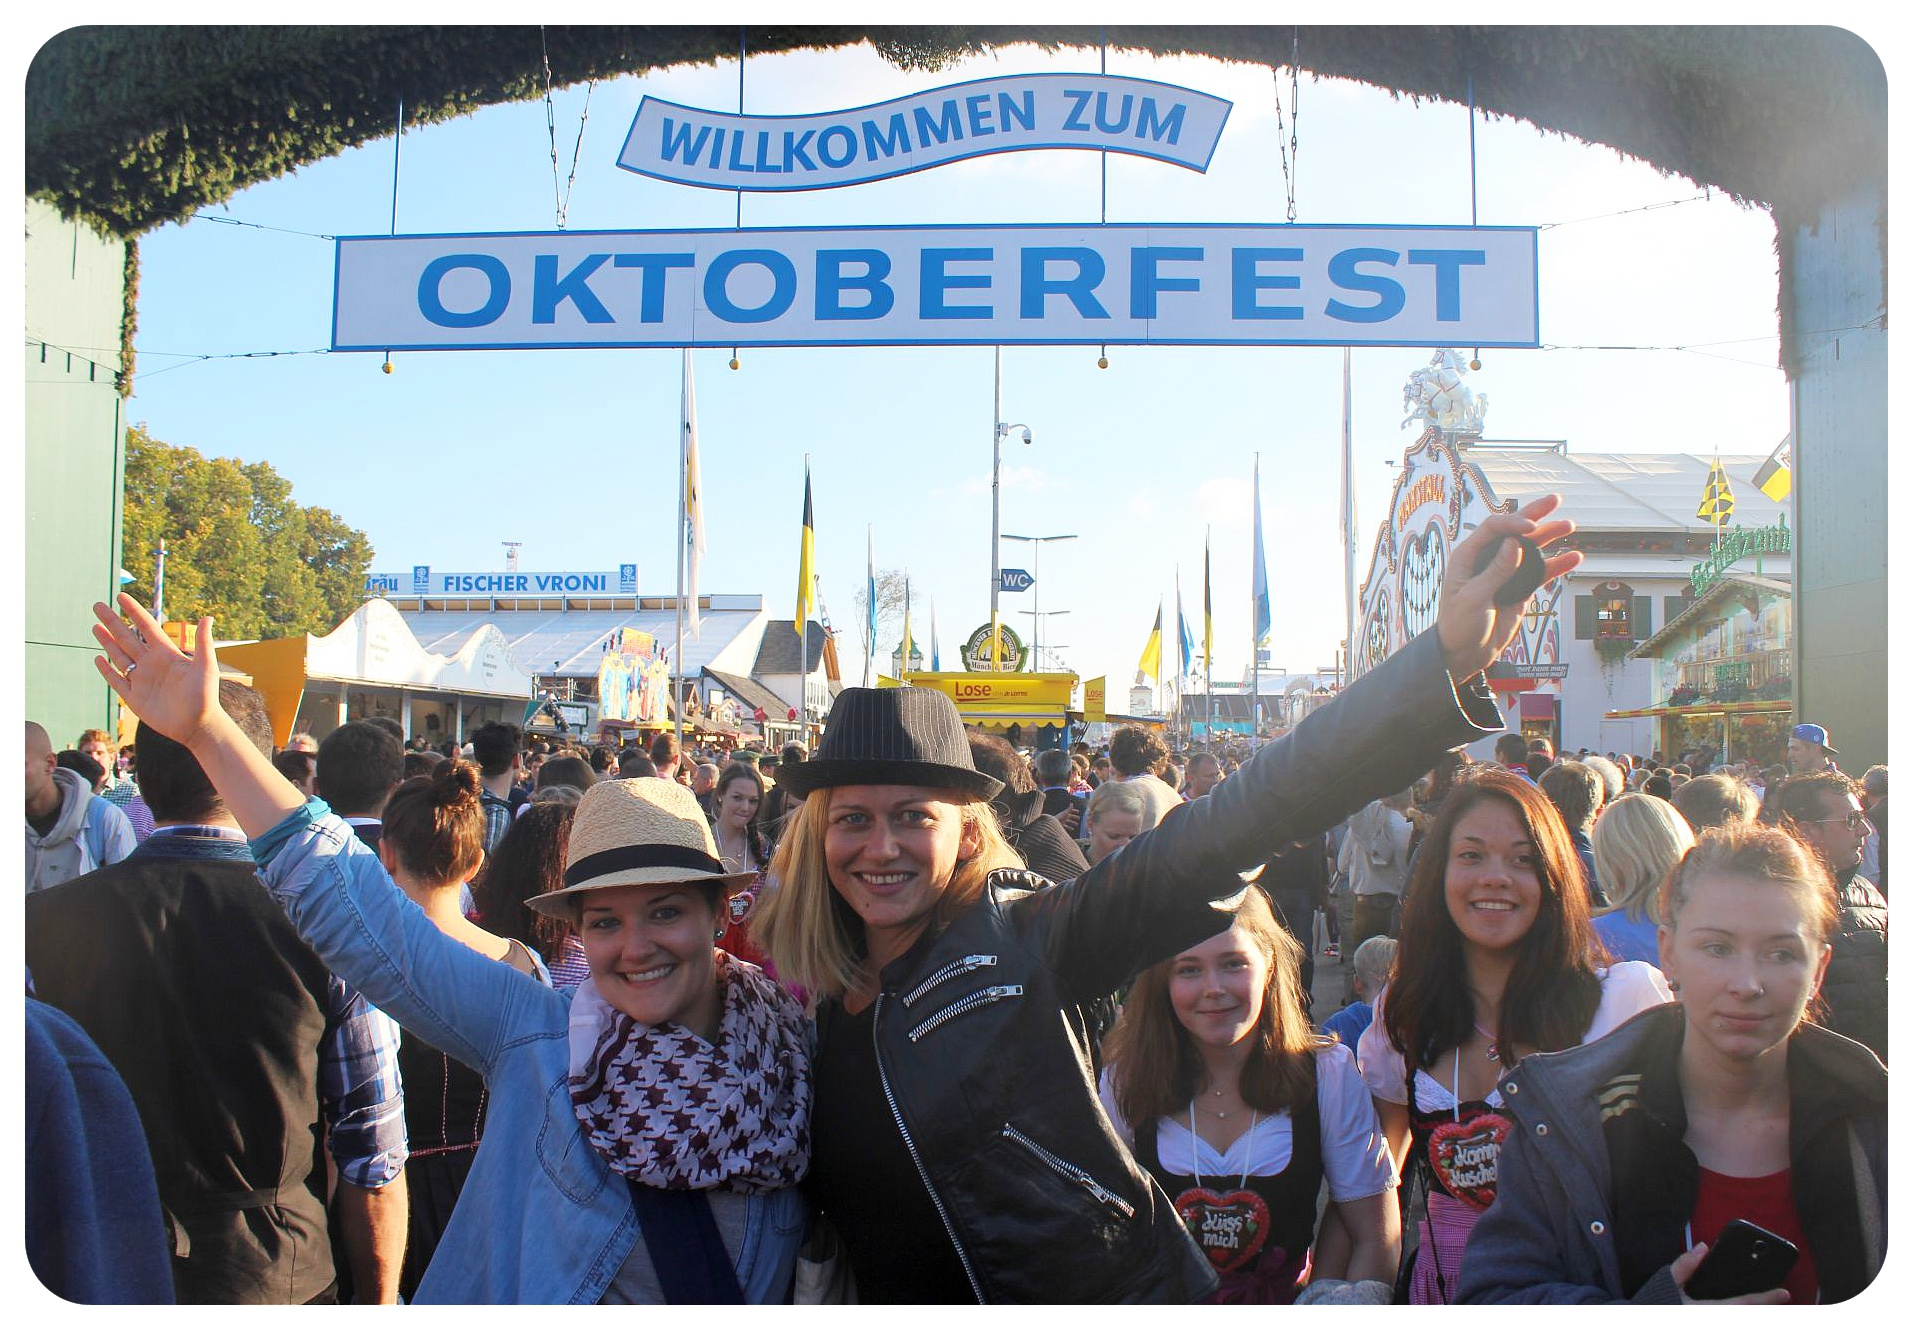 oktoberfest fun with rikka